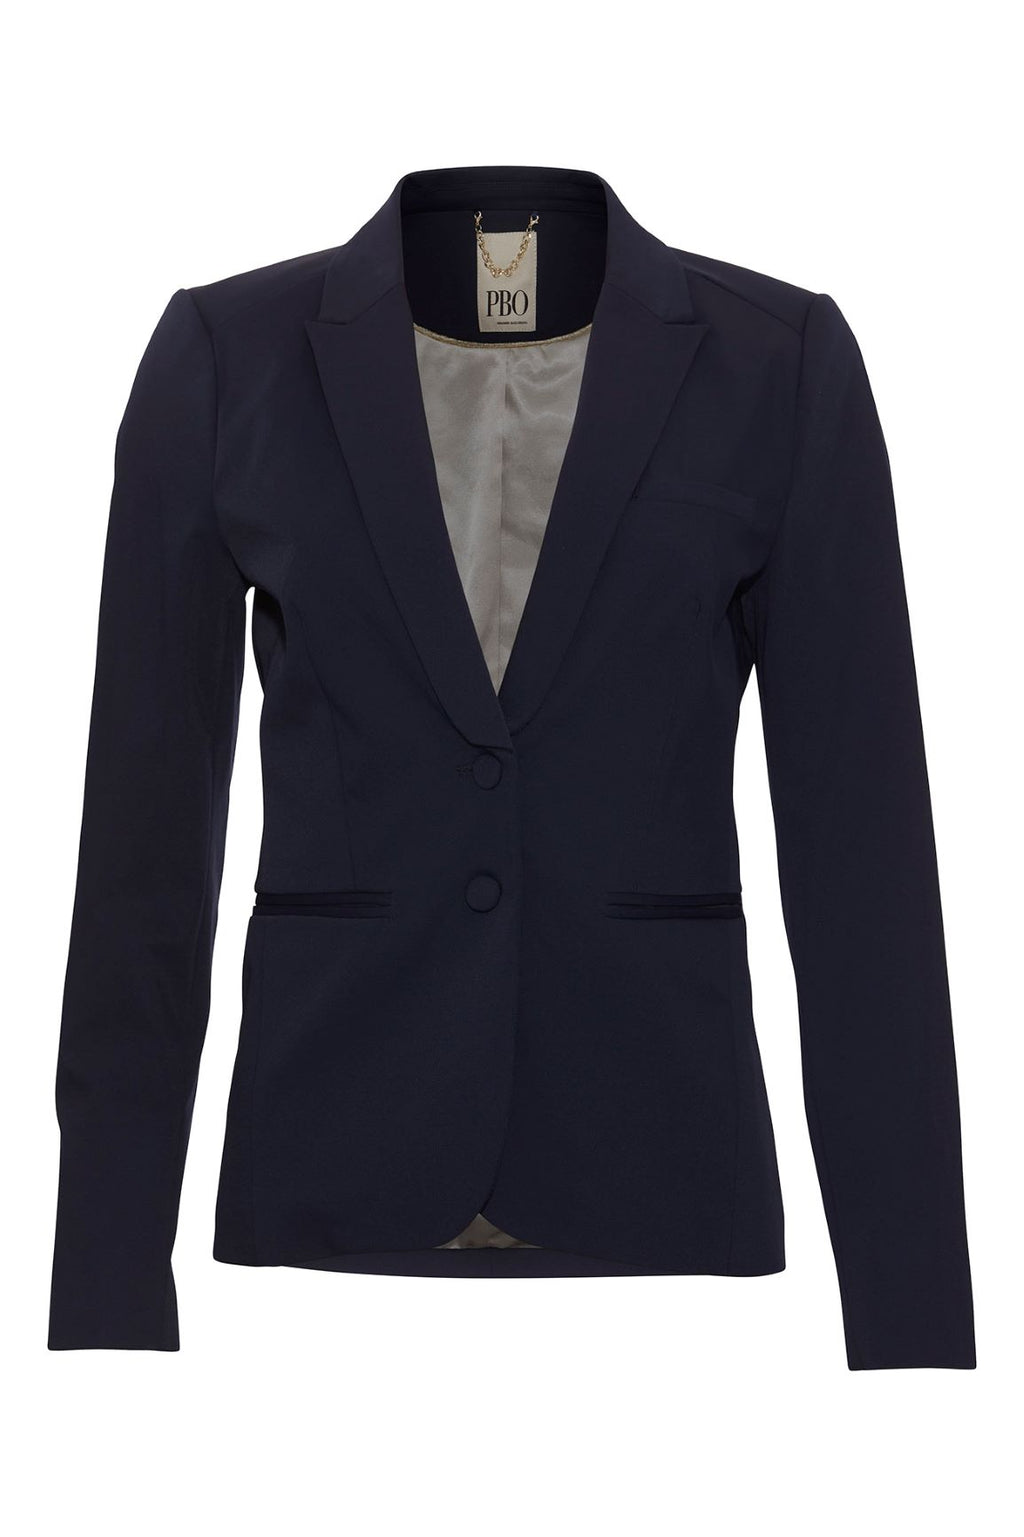 PBO Honor blazer jakker navy 1248 (3964279652431)